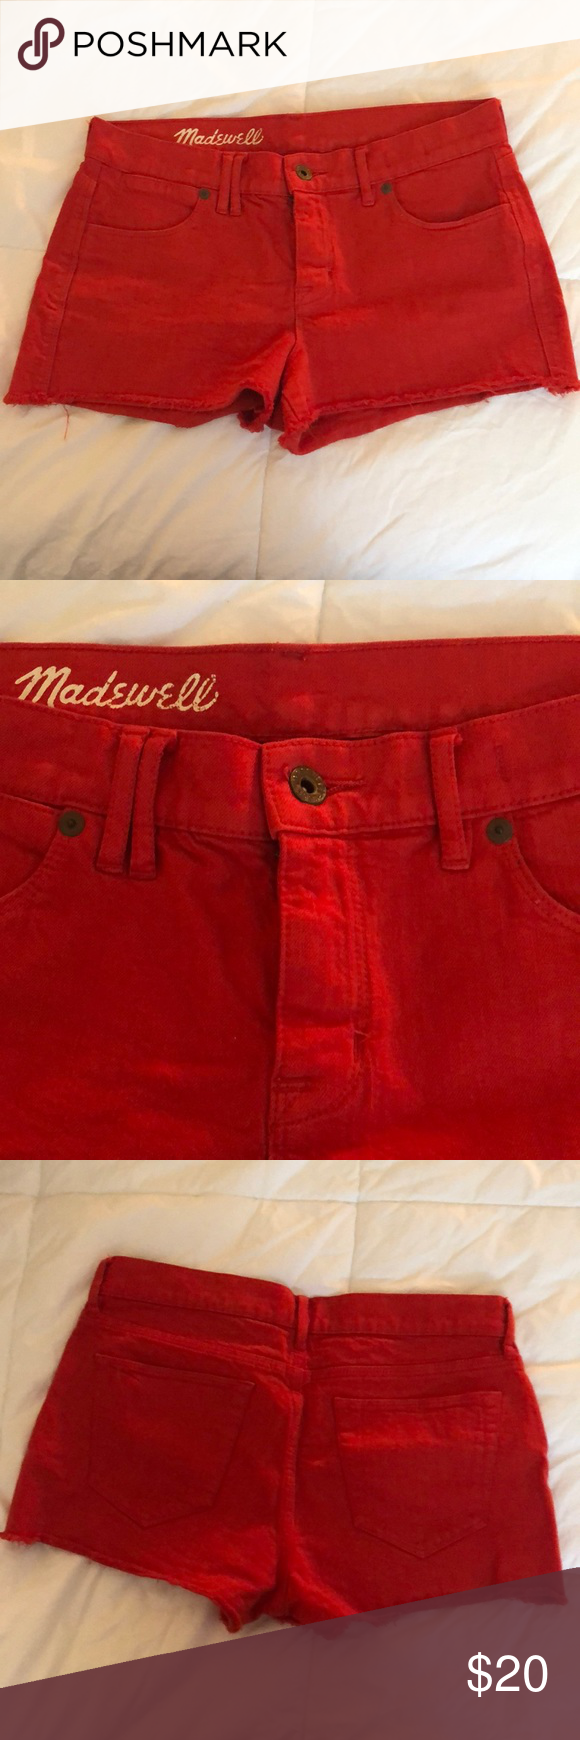 Madewell Red ❗️Denim Cutoff Shorts Size 27 Excellent used condition  Color is close to stop sign red 2 inch inseam  Bronze hardware  No holes, stains, or piling  Smoke free home Madewell Shorts Jean Shorts #denimcutoffshorts